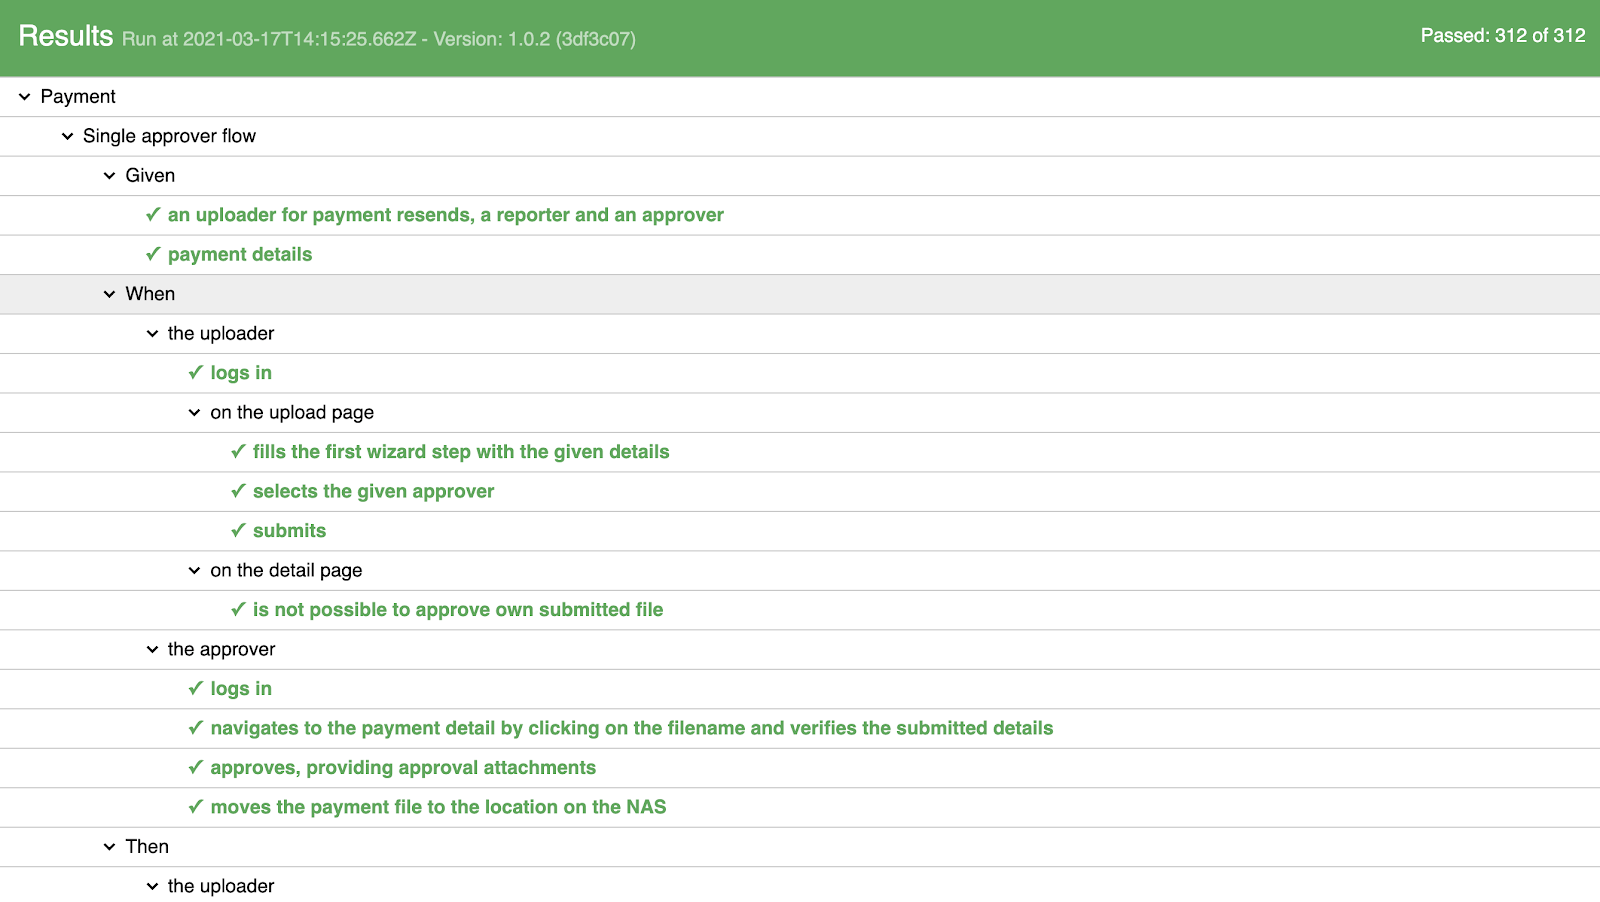 detailed test report to show all steps in given-when-then form